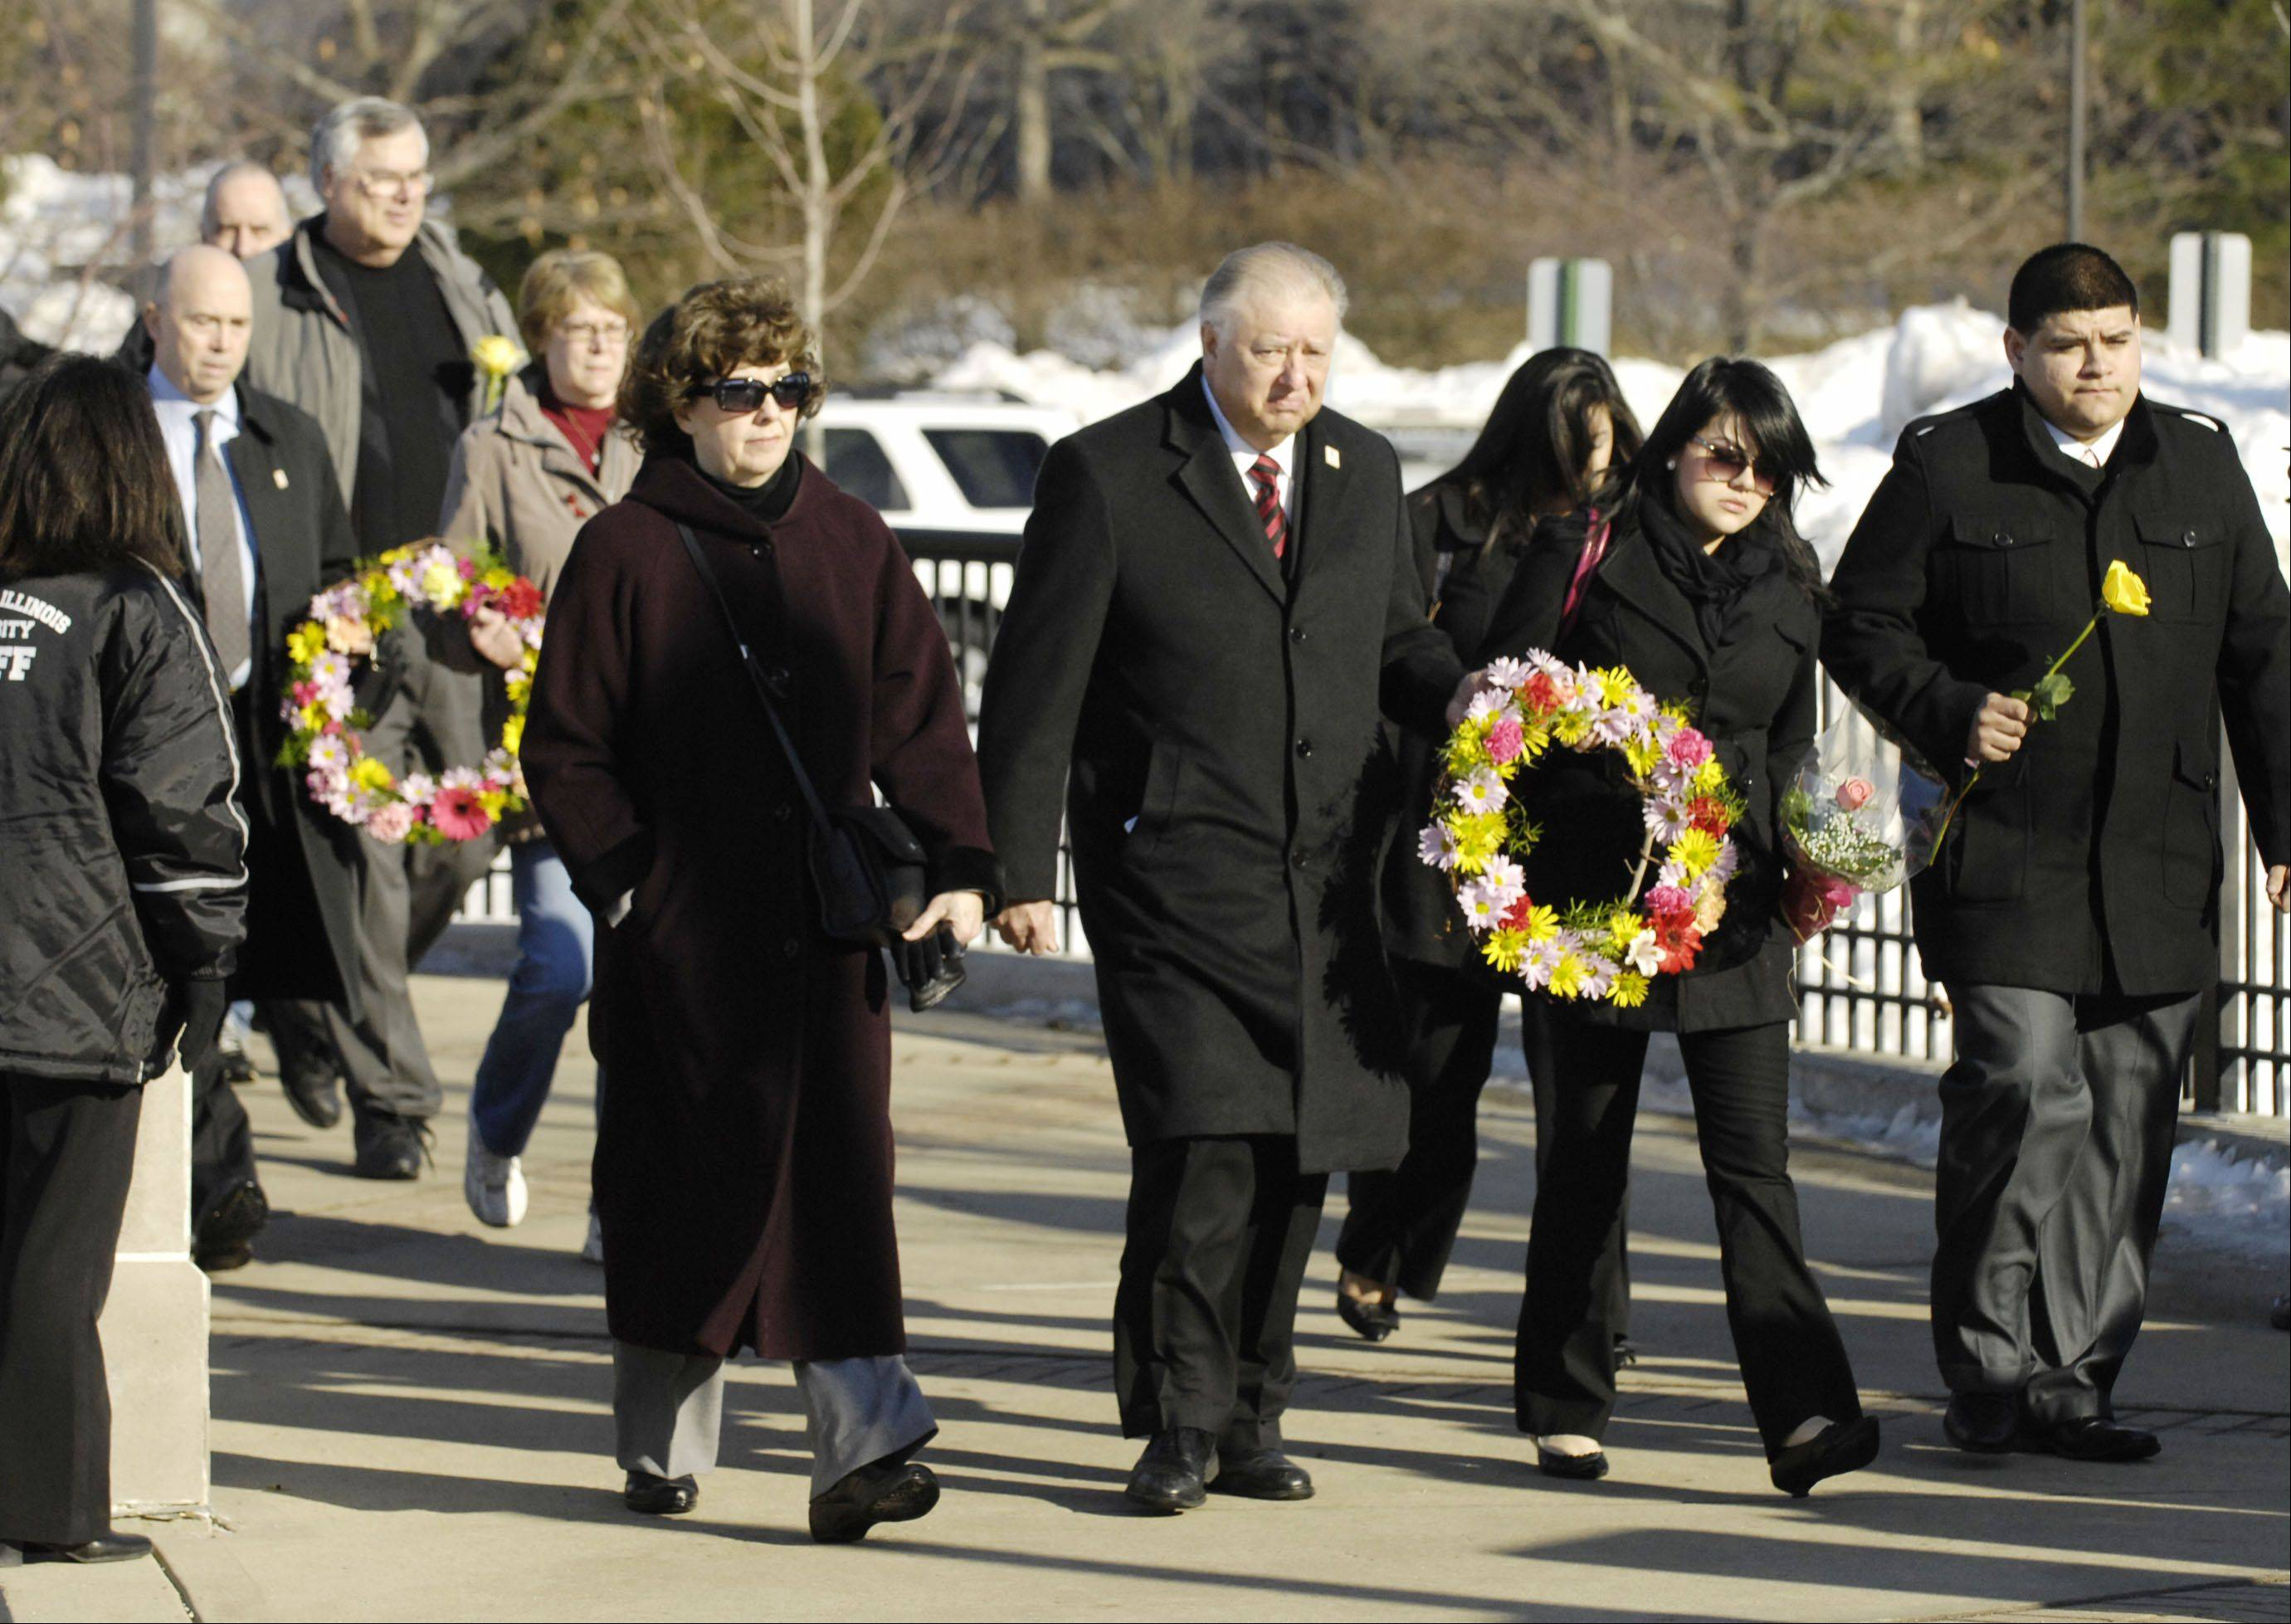 NIU marks 5-year anniversary of shootings